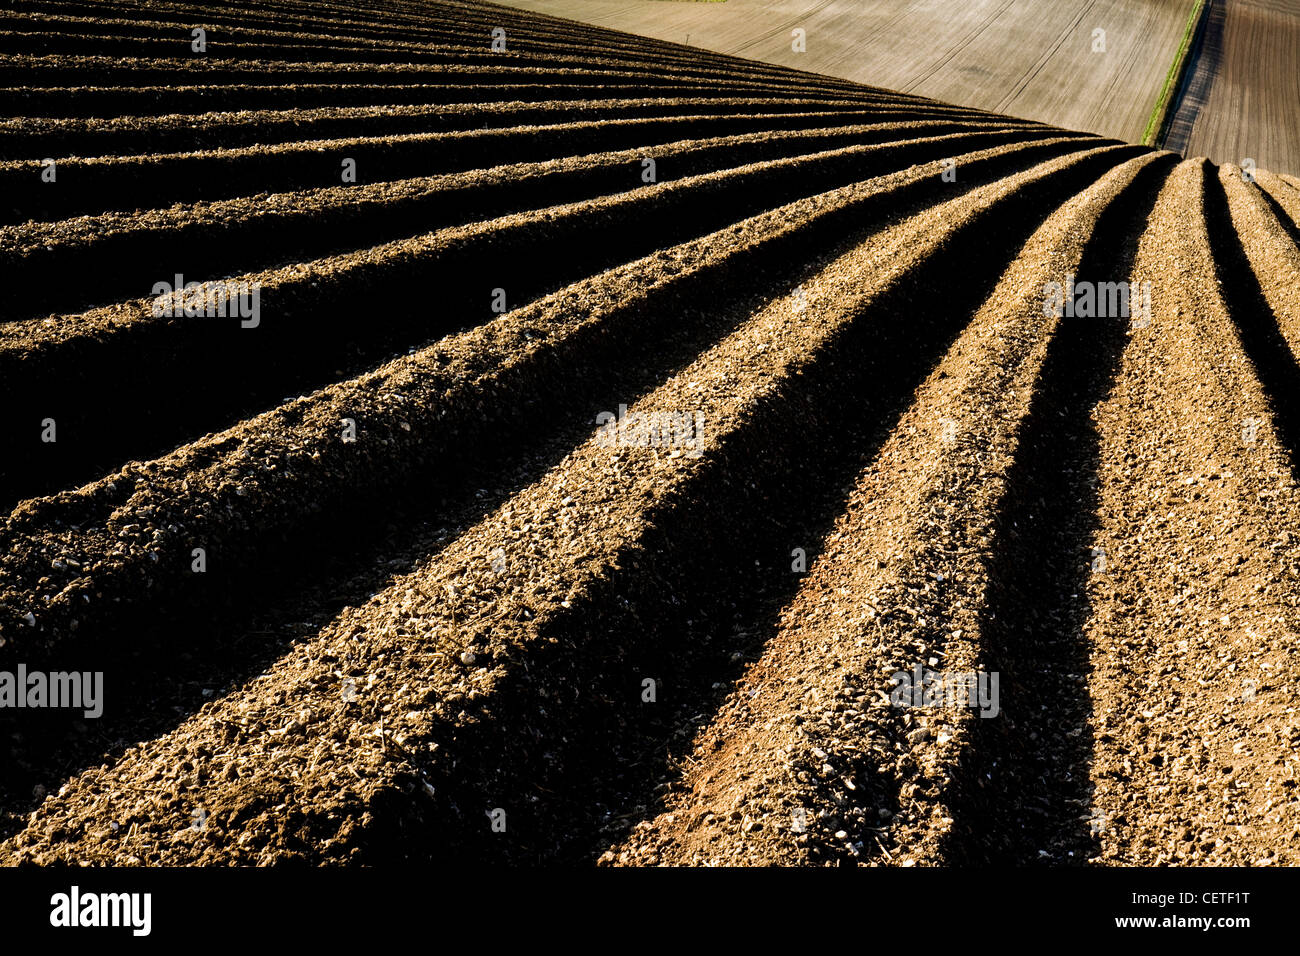 An abstract view of a ploughed field in North Yorkshire. - Stock Image